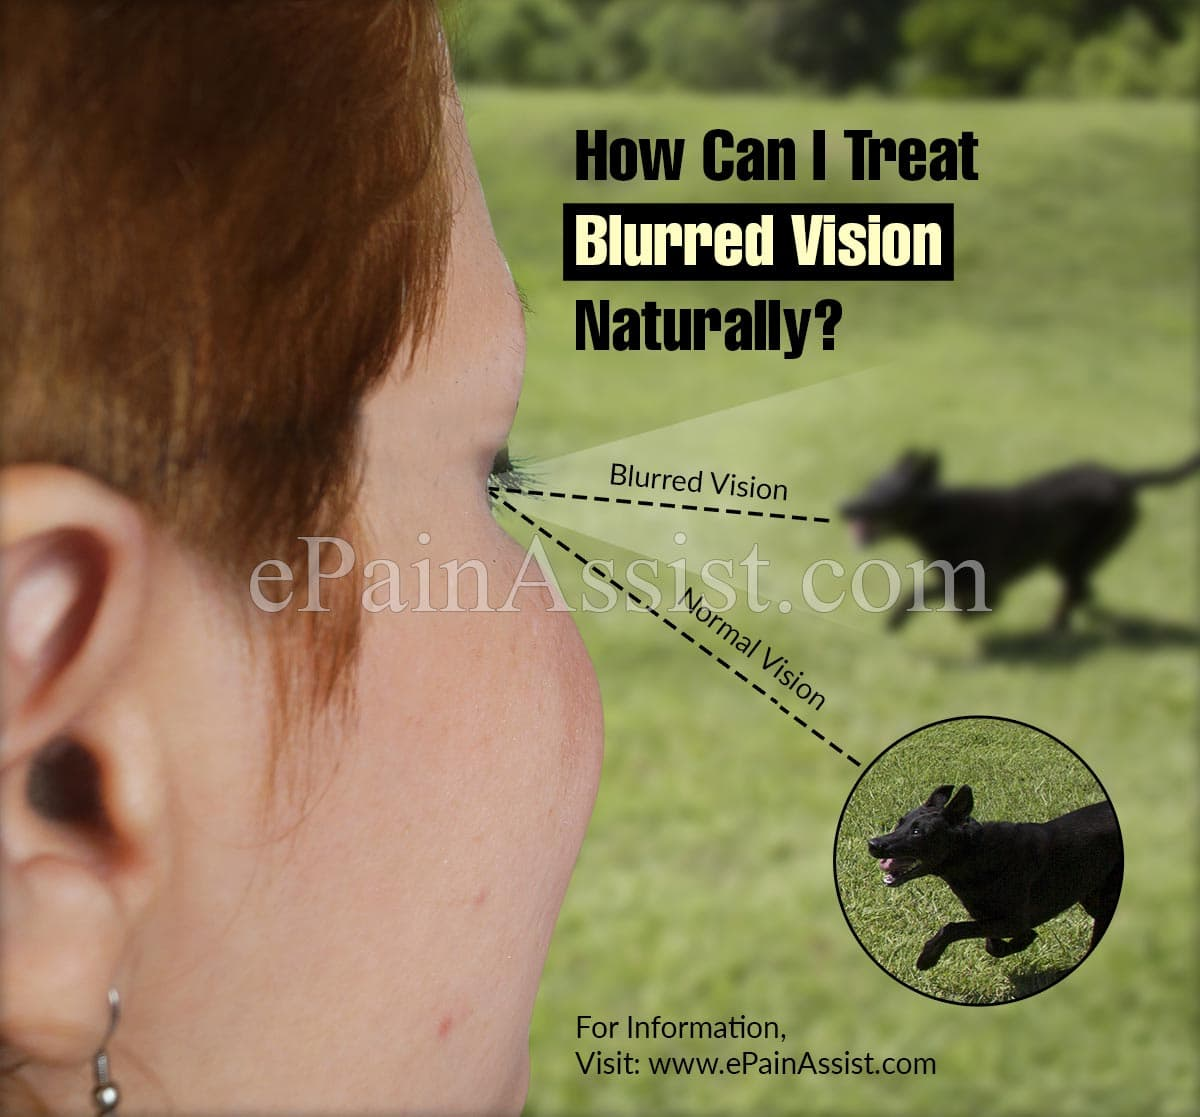 How Can I Treat Blurred Vision Naturally?